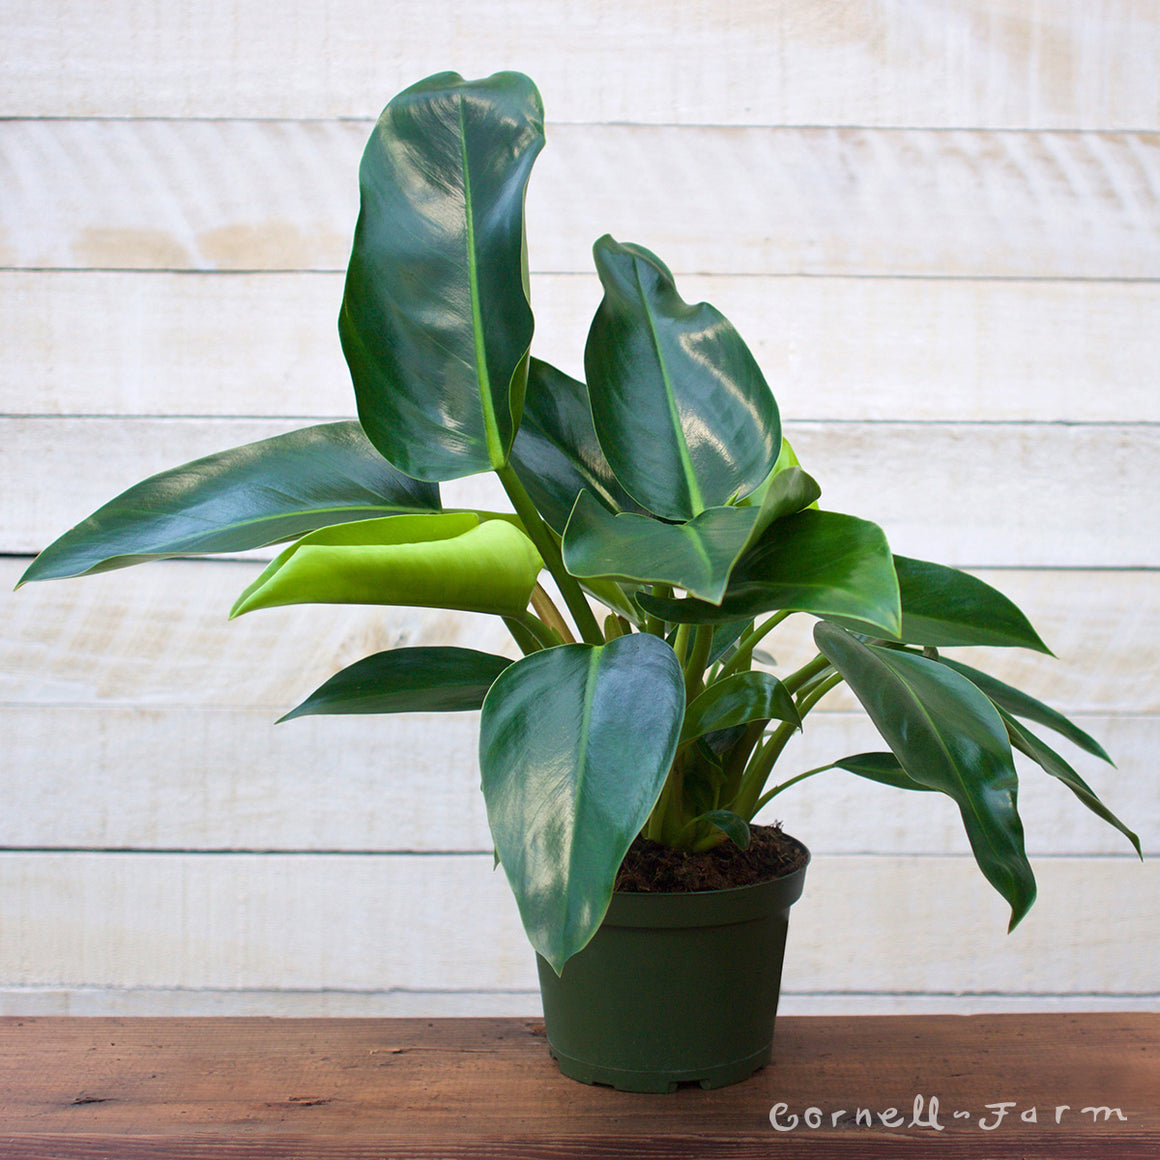 Philodendron 'Green Congo' (Philodendron 'Green Congo') 6in